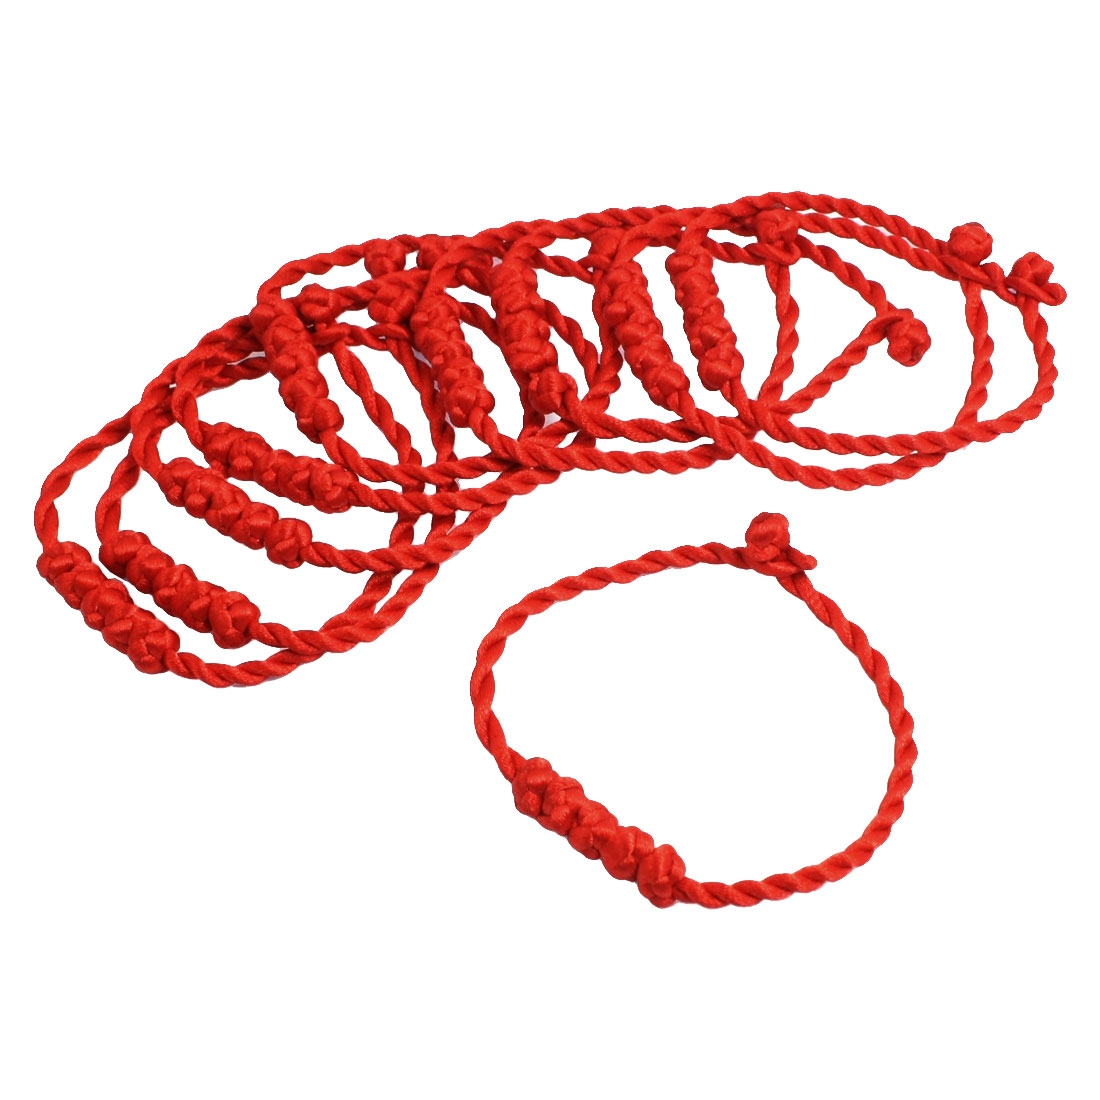 Knot Decor Red String Twisted Bracelet Bangle 10 Pcs for Girls